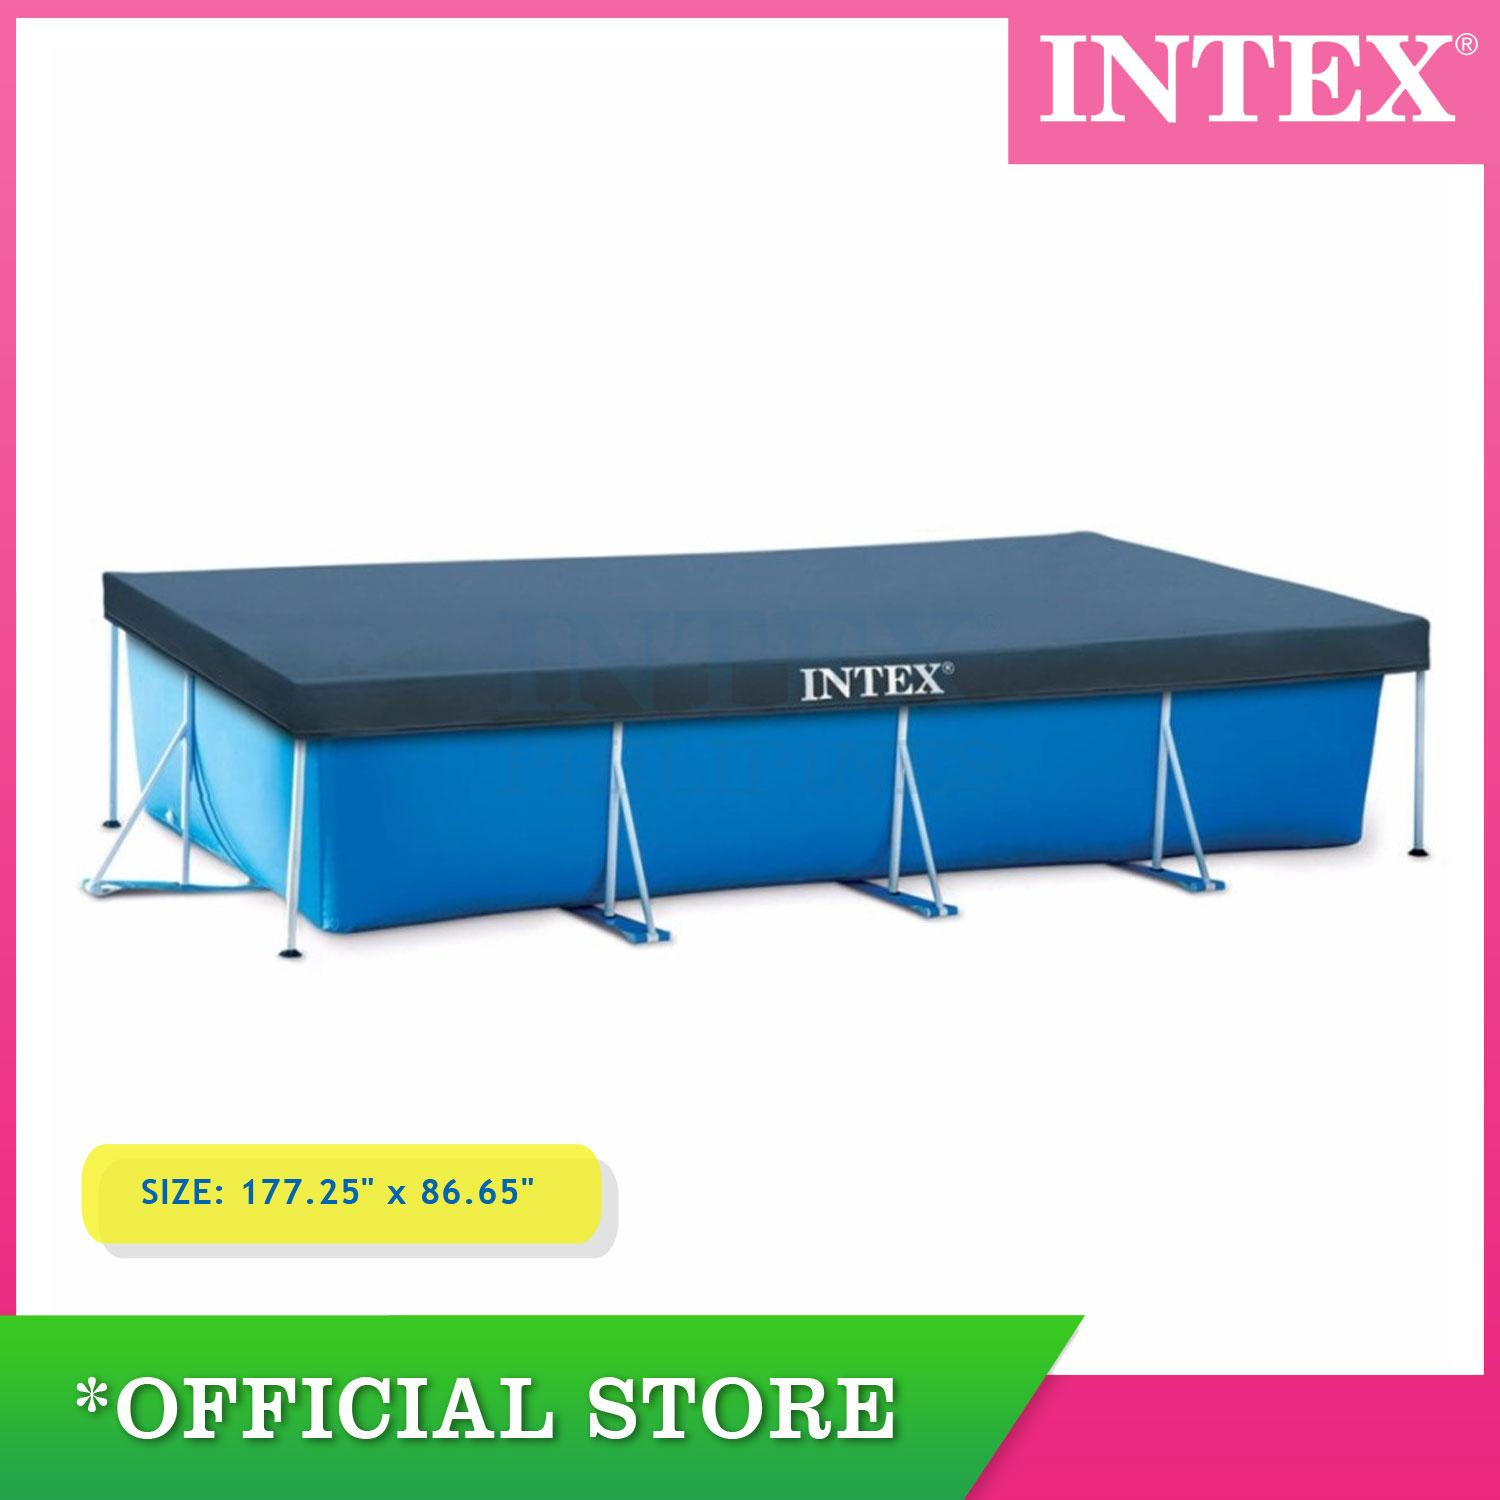 Pool Reinigungsset Intex Intex Pool Cover 4 50 M X 2 20 M 177 25